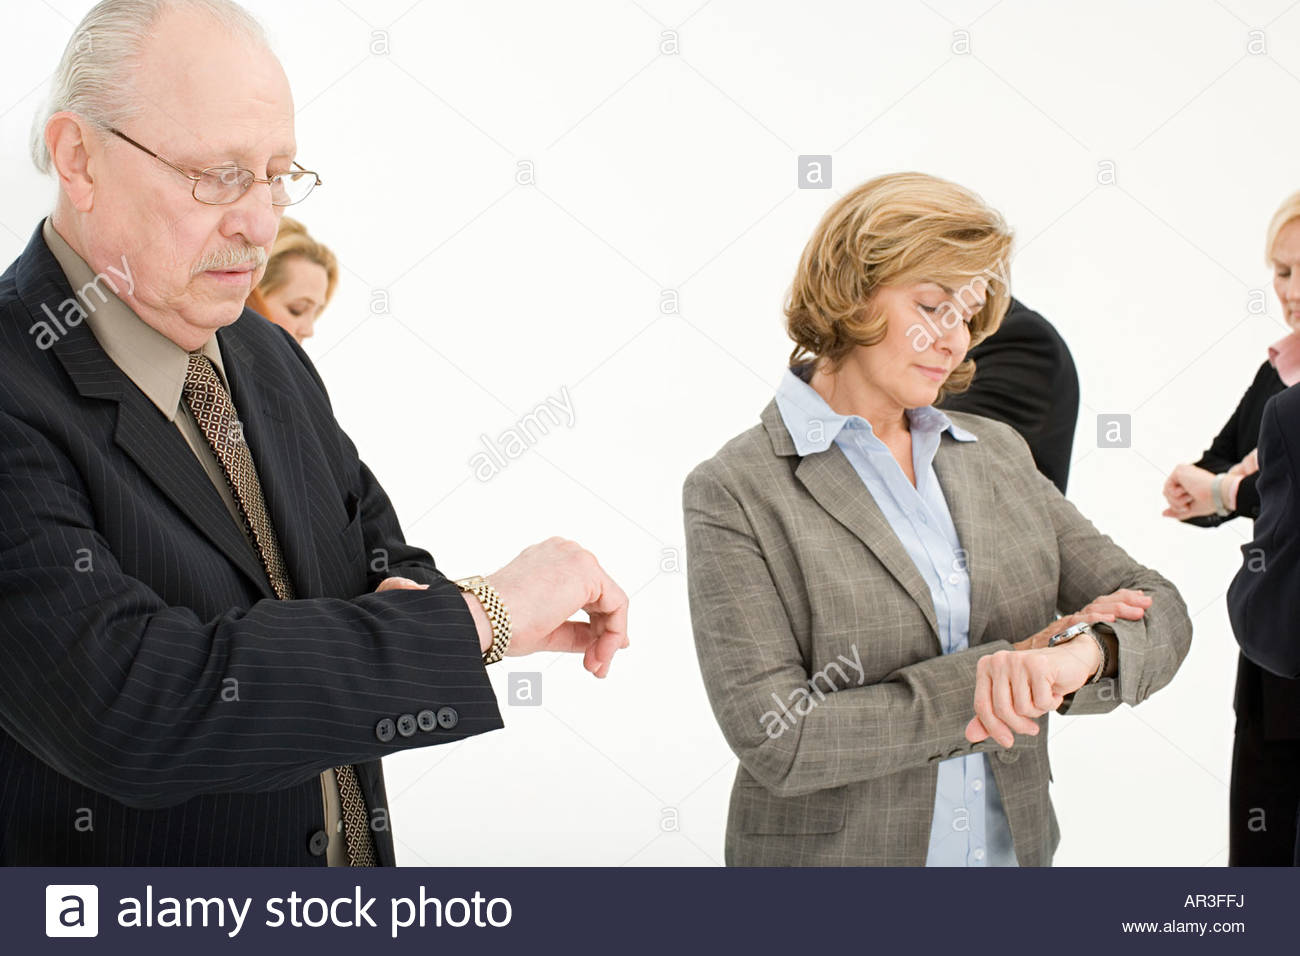 Businesspeople looking at their watches - Stock Image